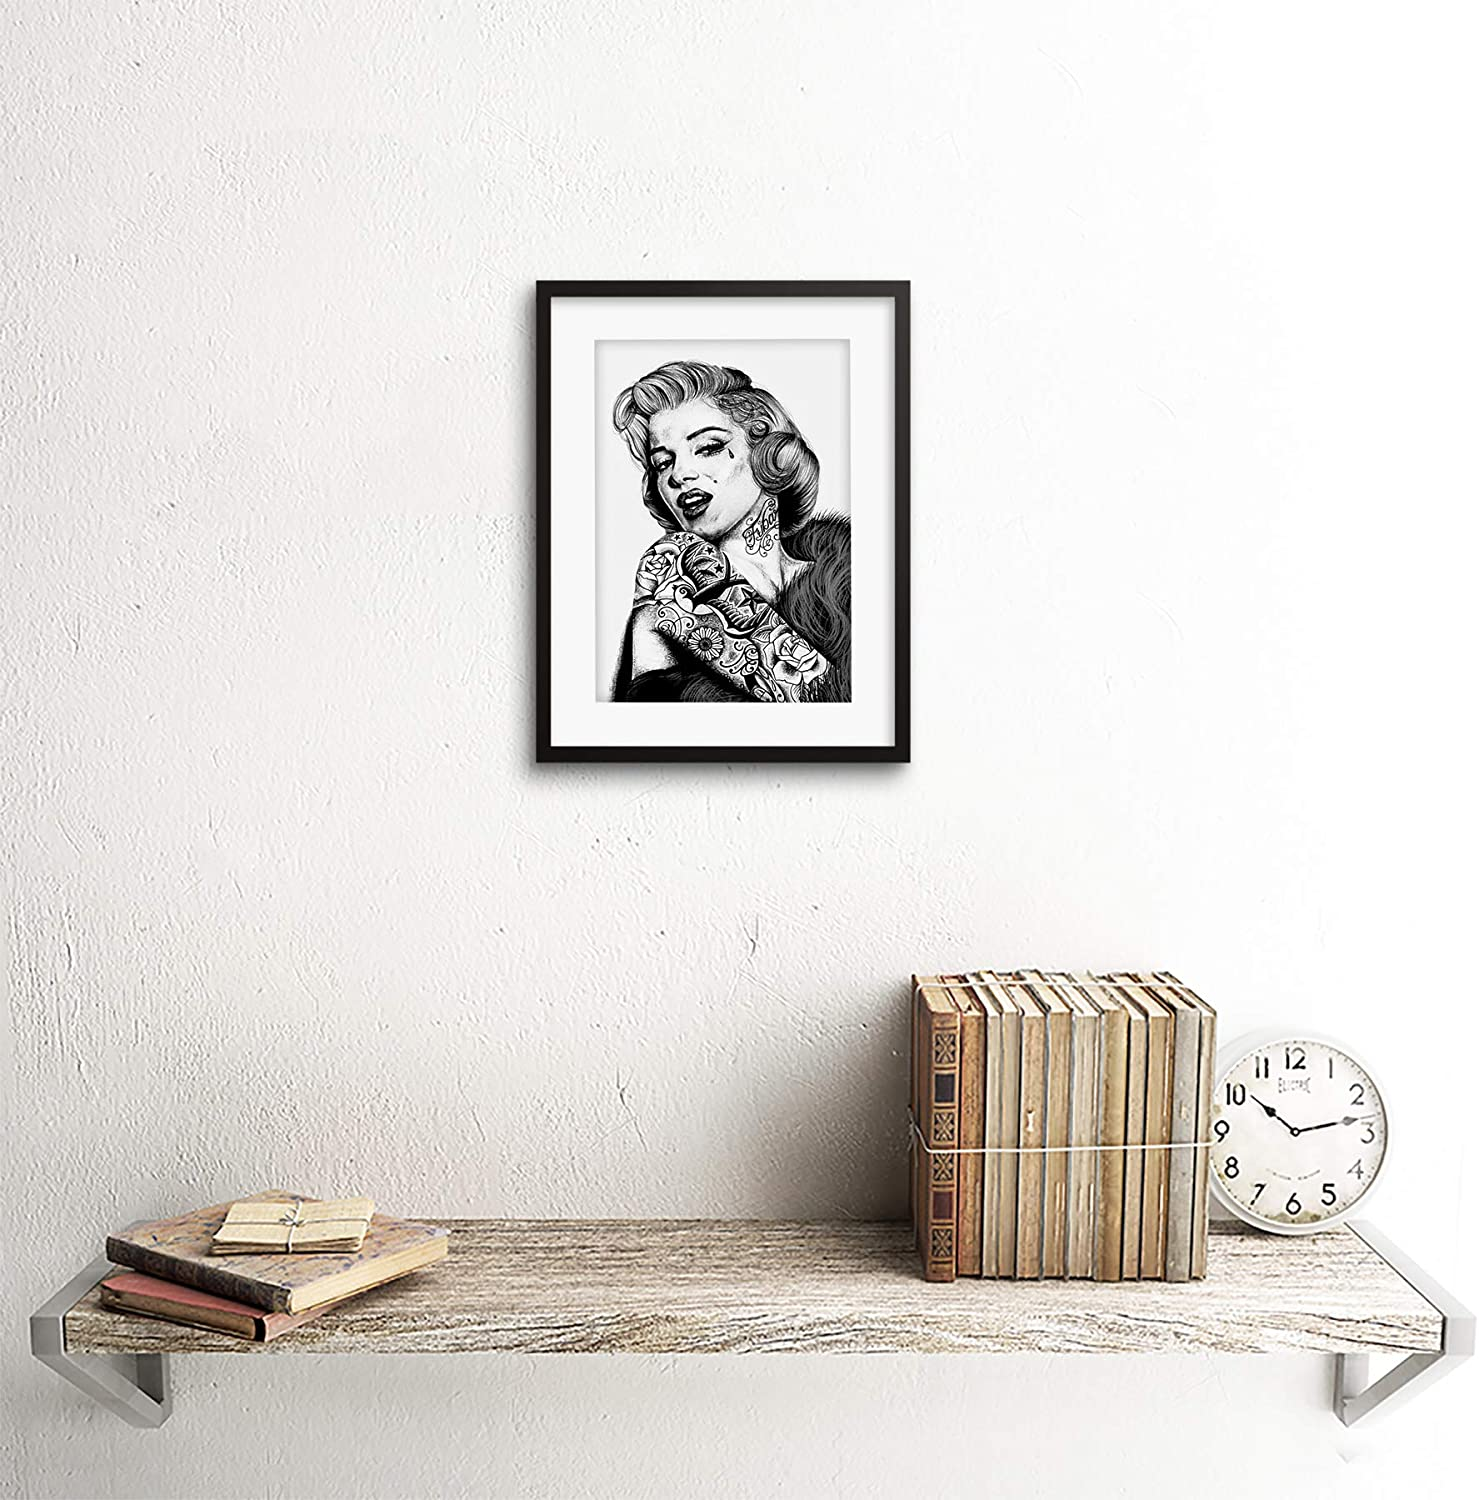 Wee Blue Coo Marilyn Monroe Tattoo Inked IKON Icon Framed Art Print by W.Maguire F97X12456